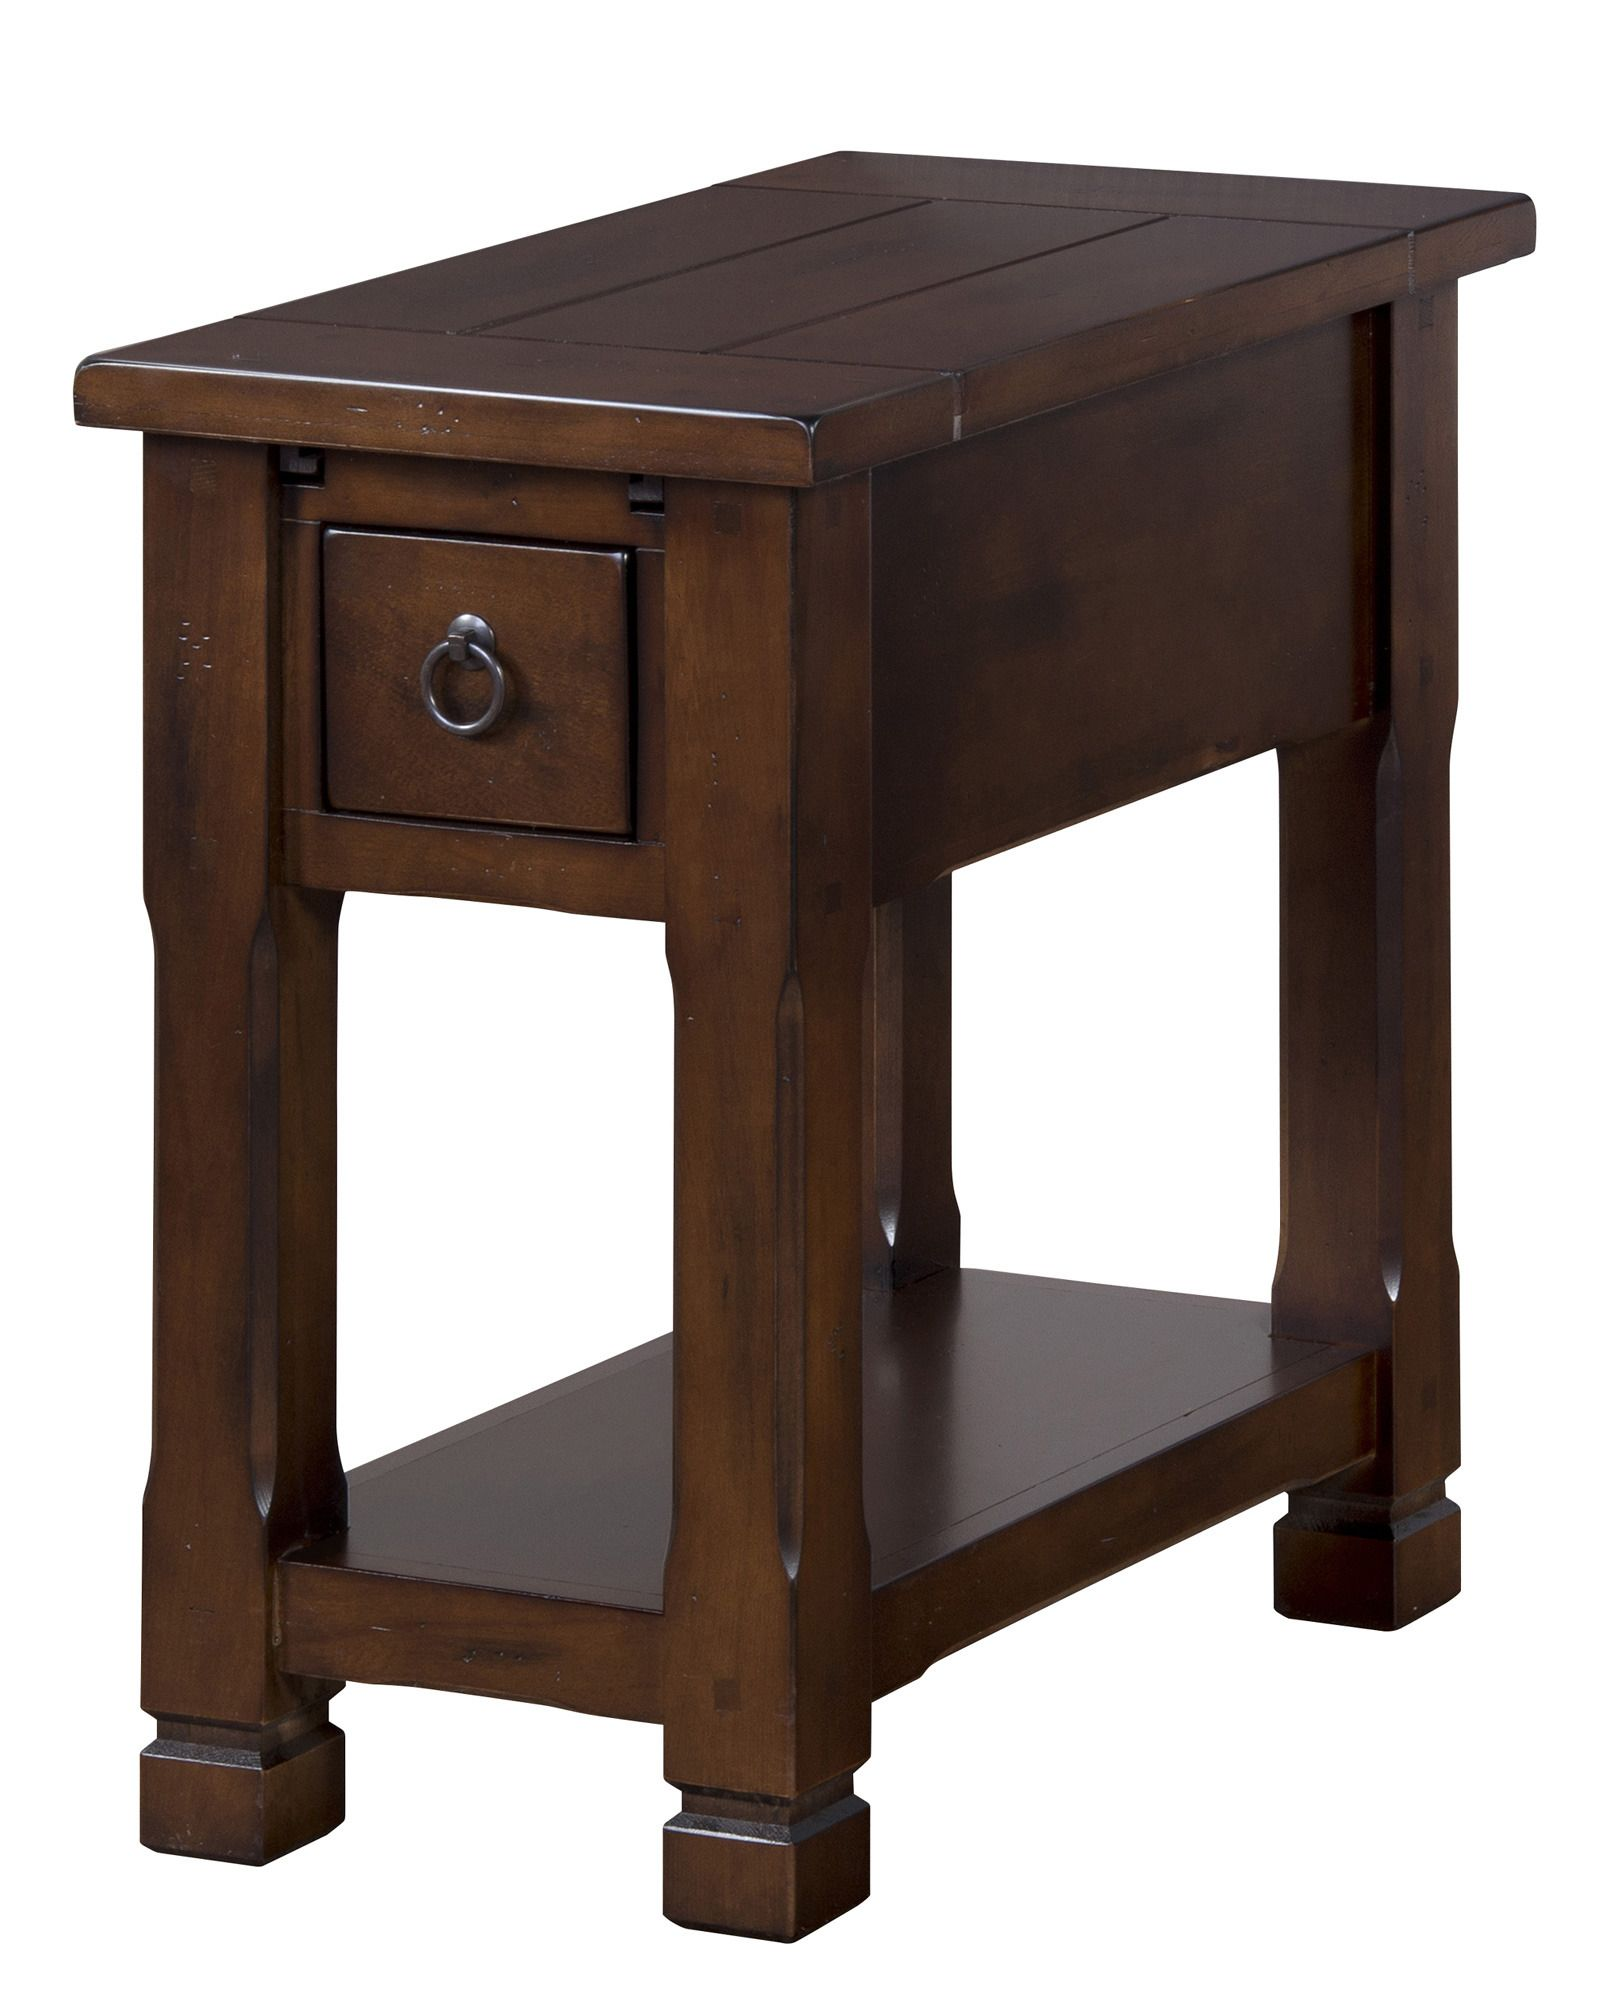 Shop Sunny Designs 0219ro T Sedona Table At The Mine Browse Our